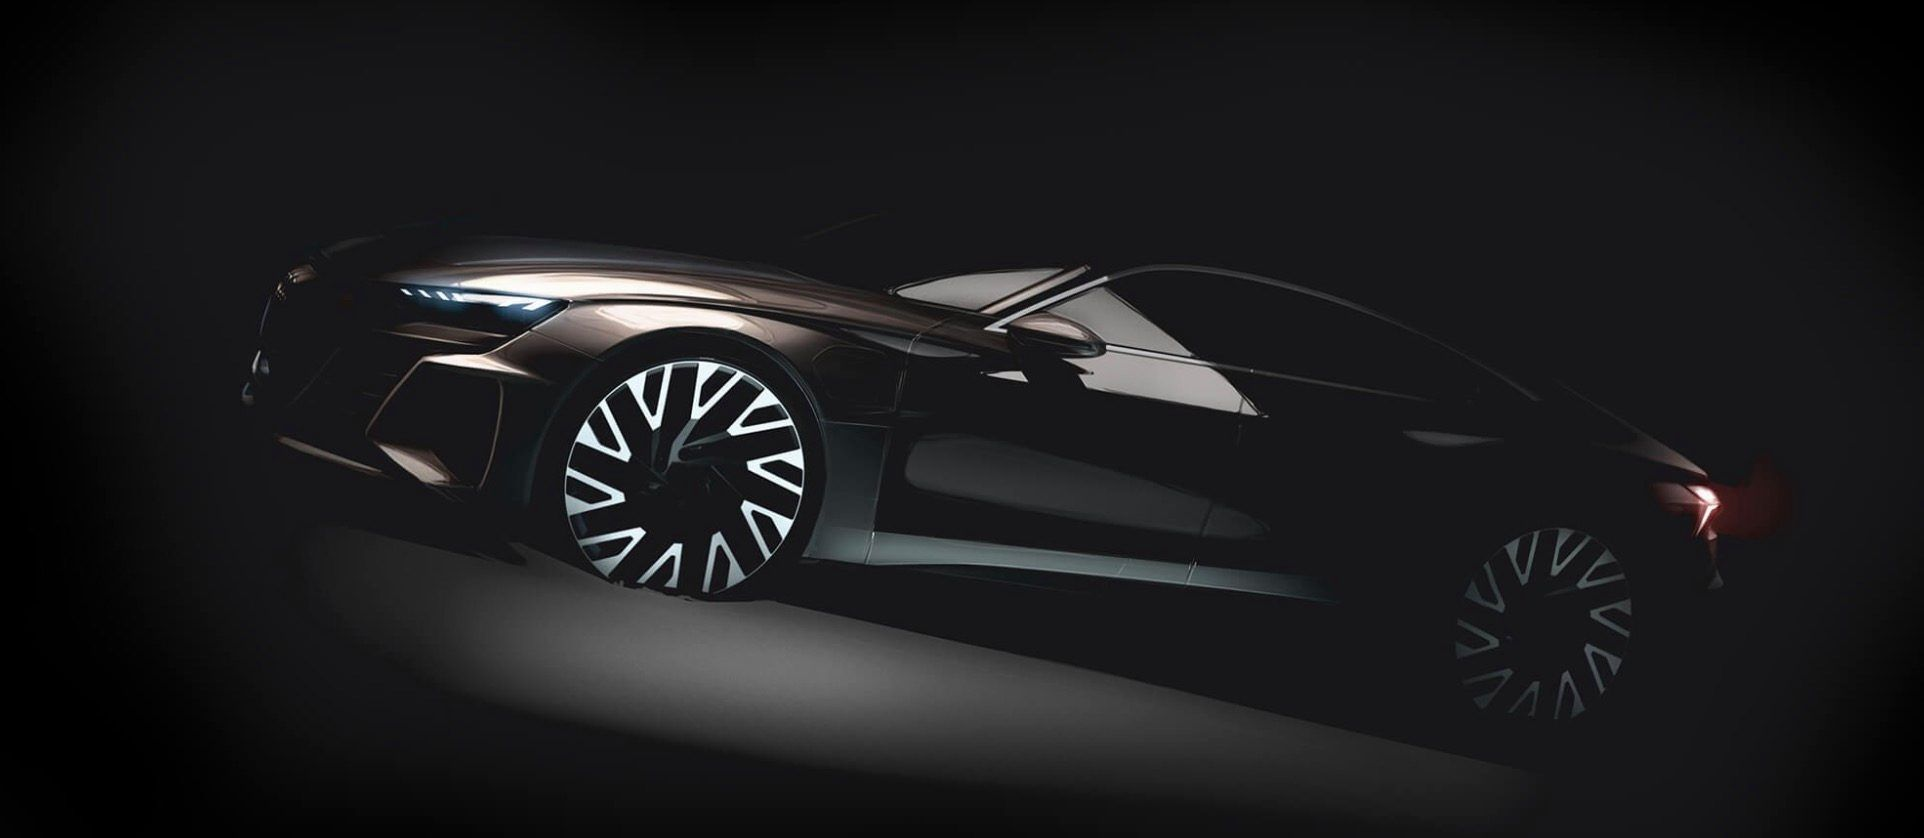 Audi's 2020 electric Sport etron GT is going to be based